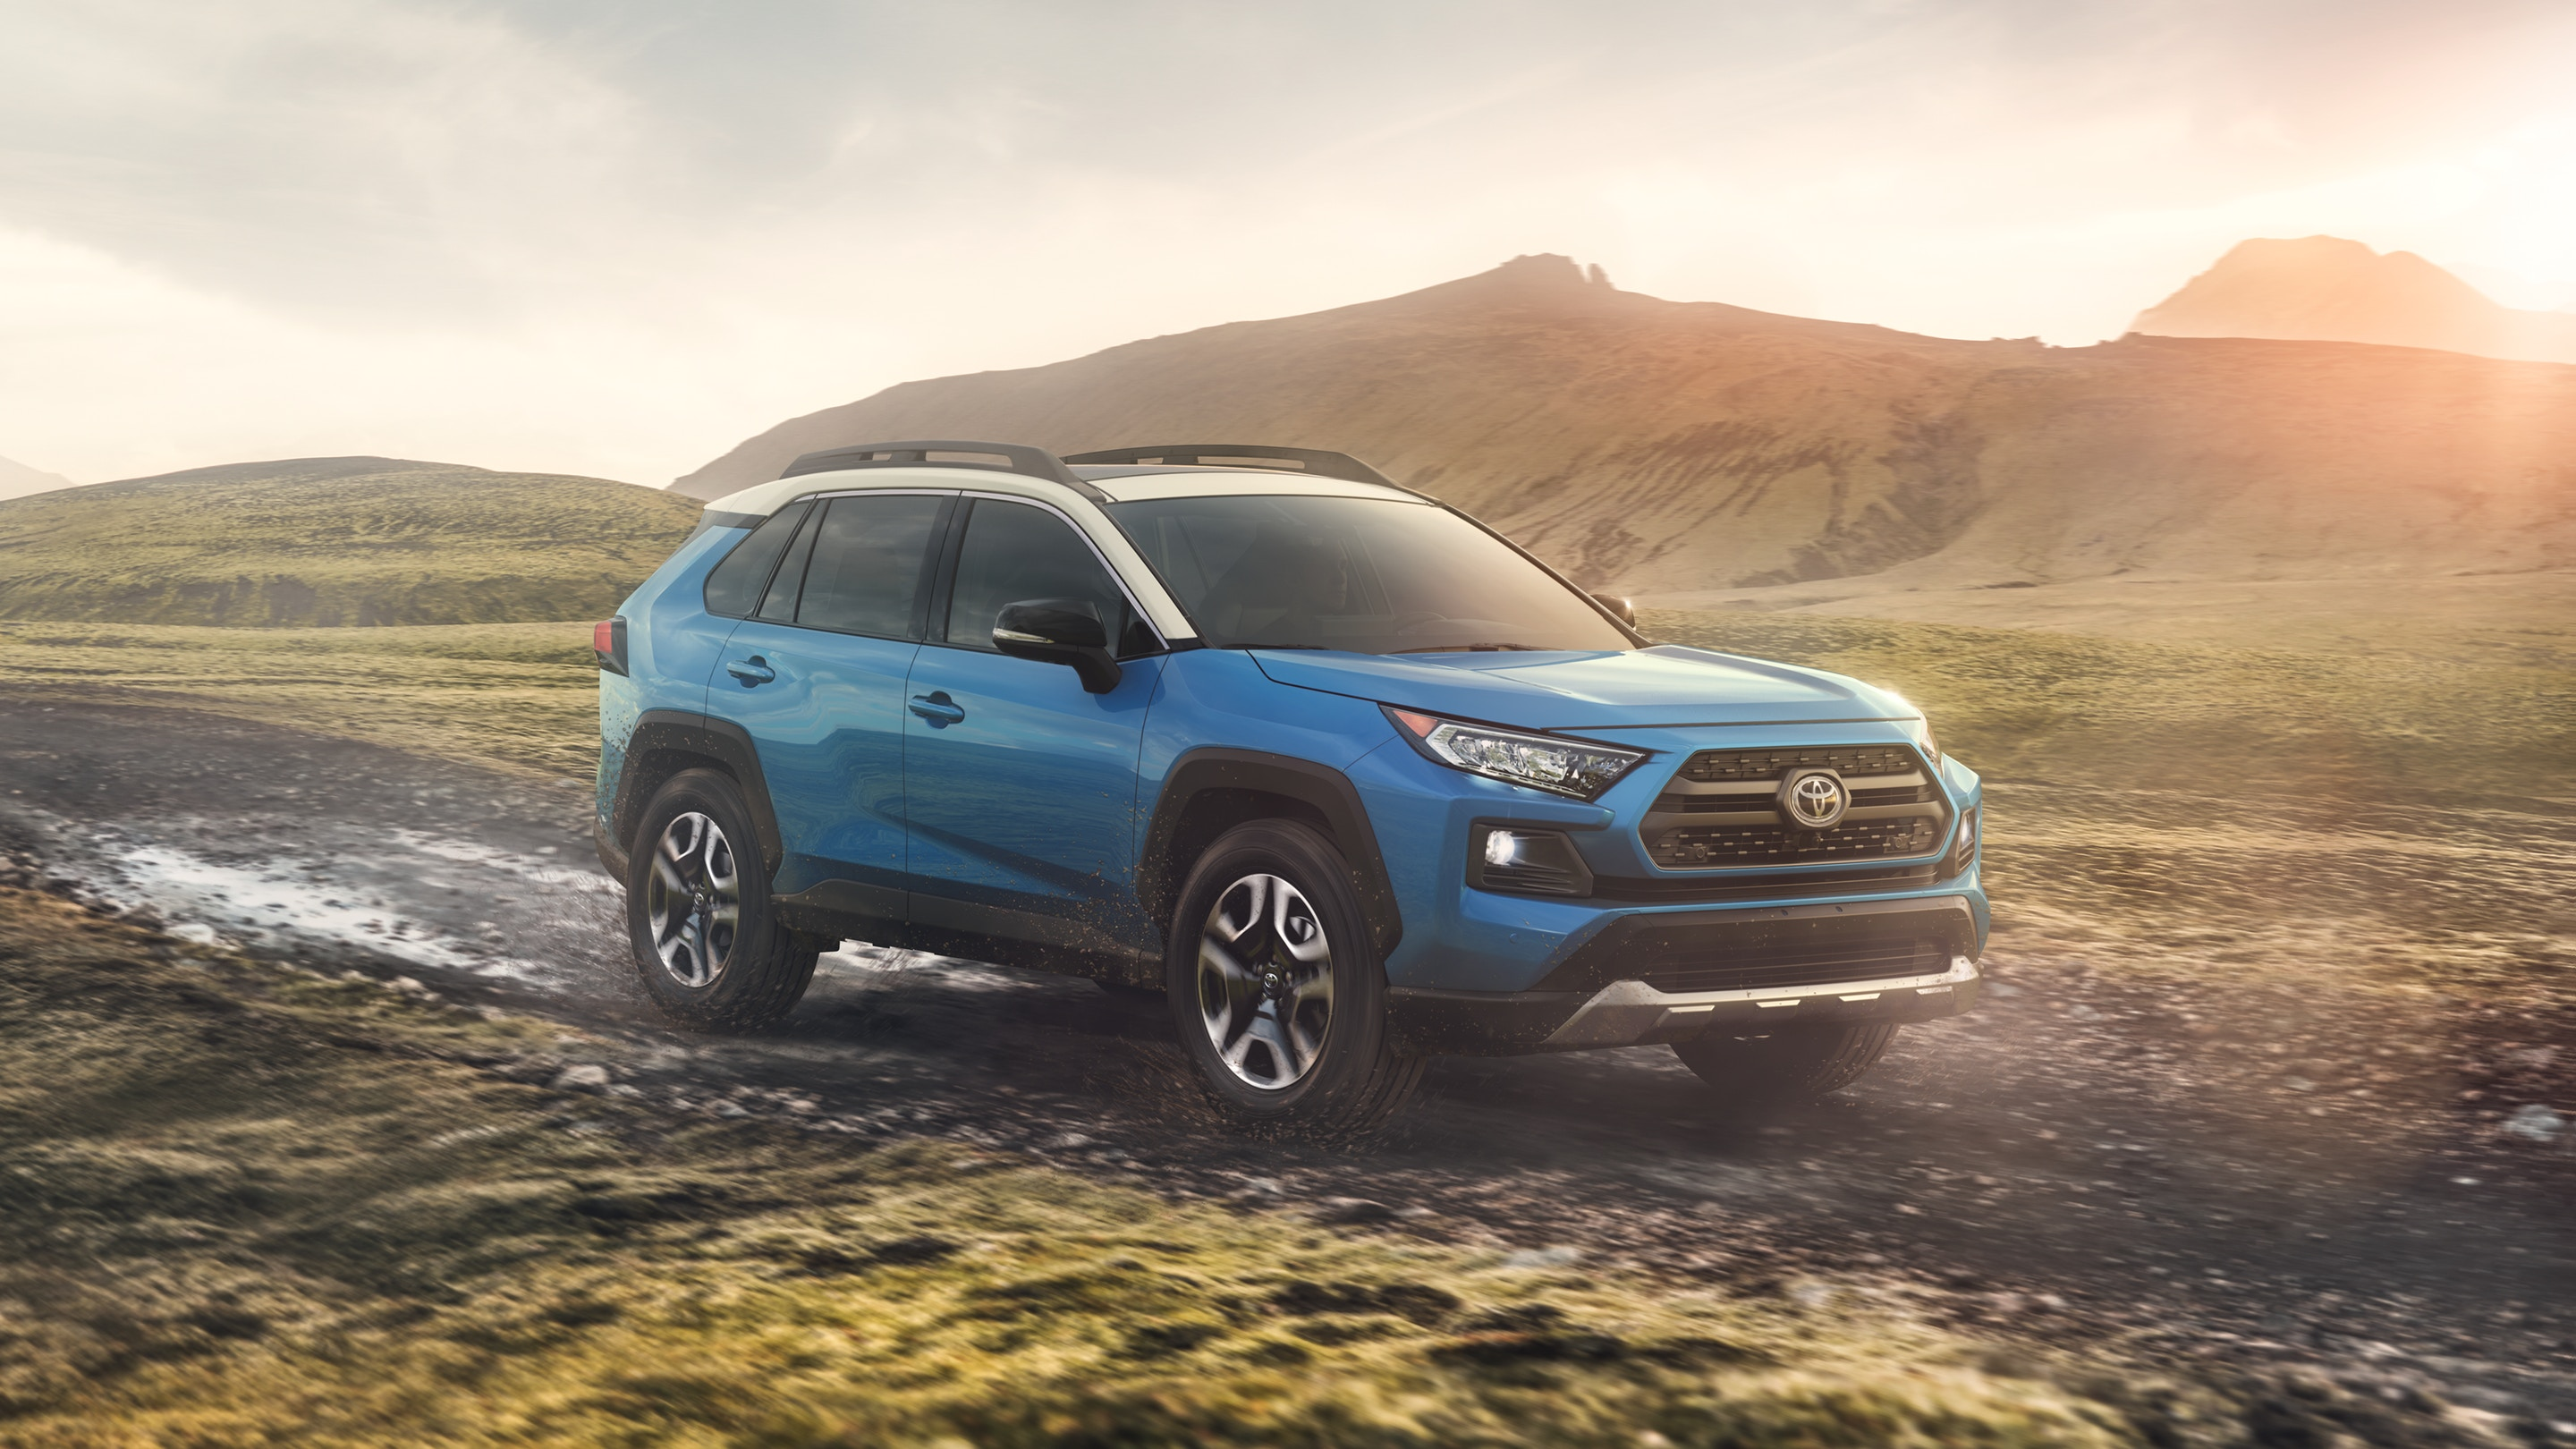 2019 Toyota RAV4 for Sale near Ypsilanti, MI